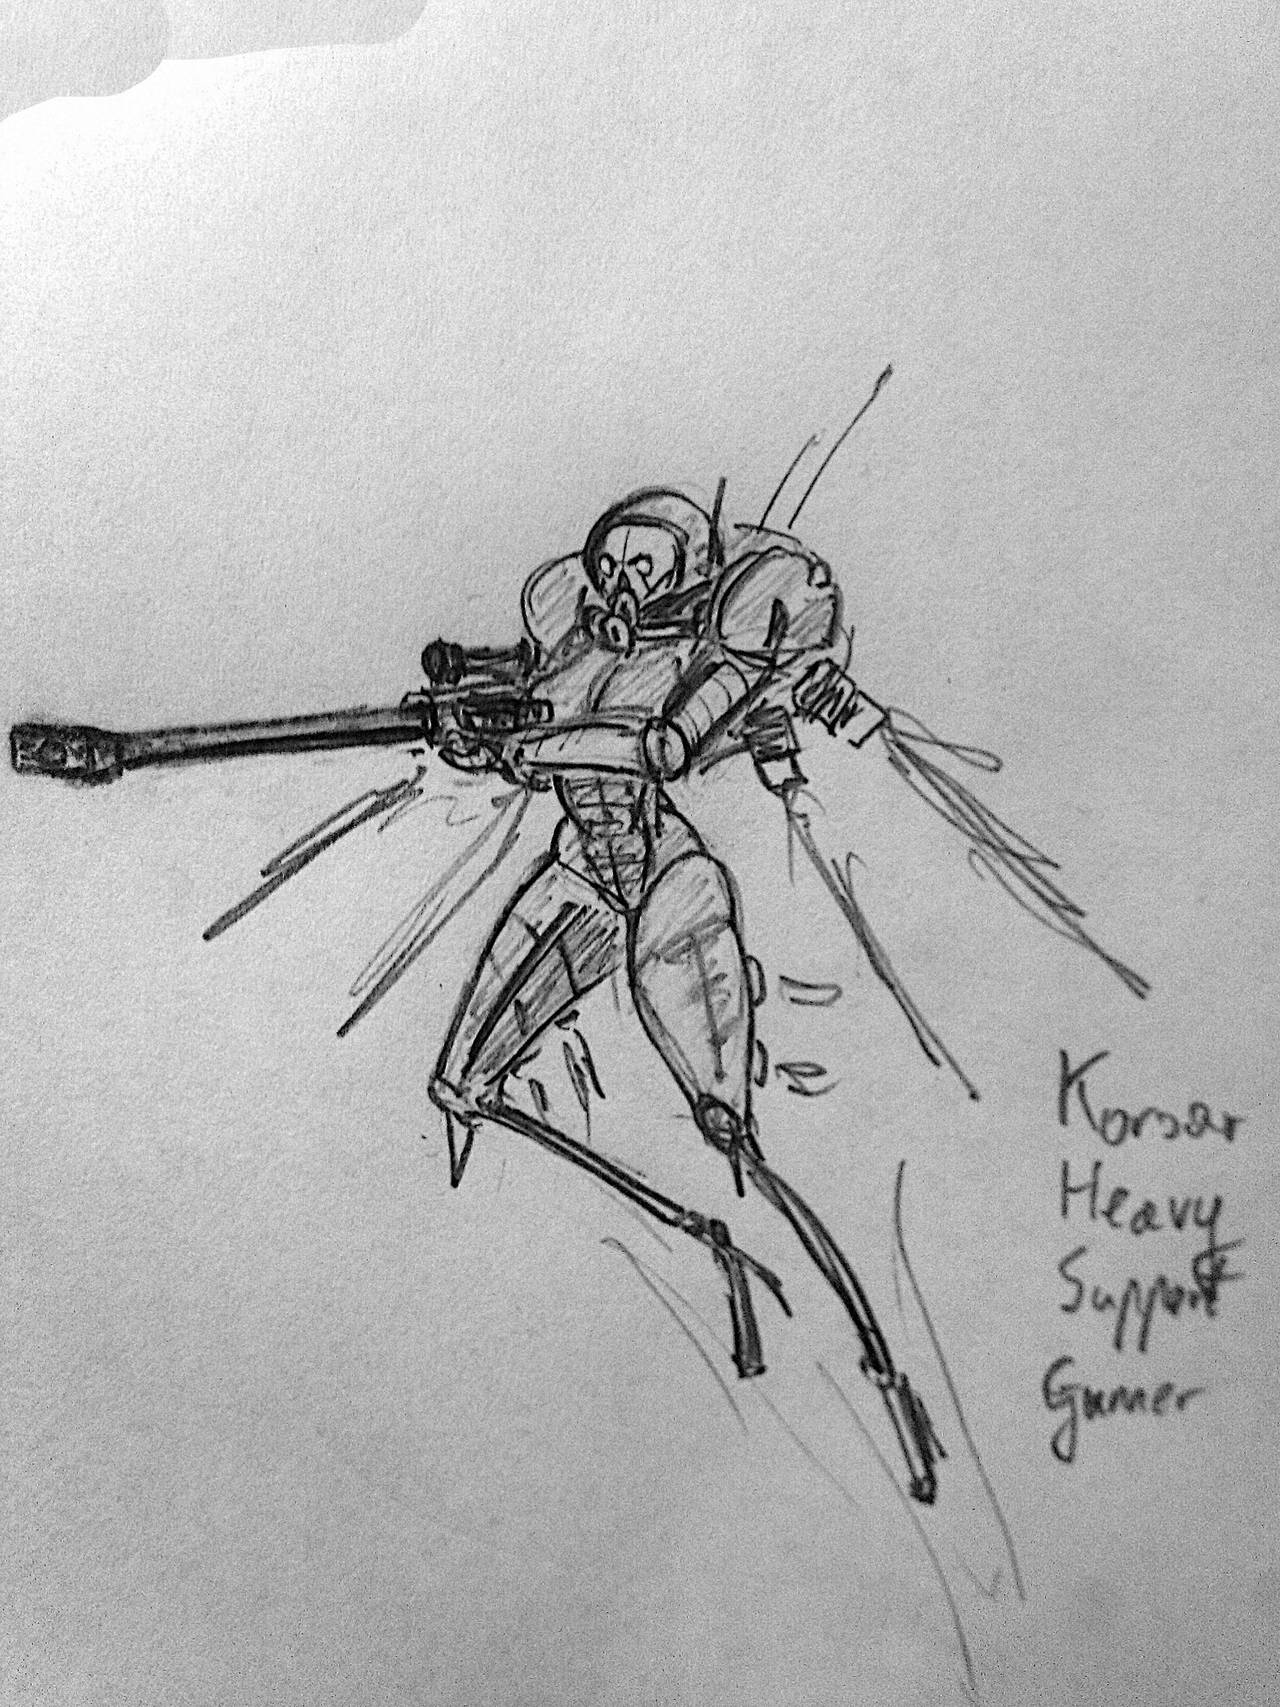 korsar_heavy_support_gunner_2_0_by_hugin